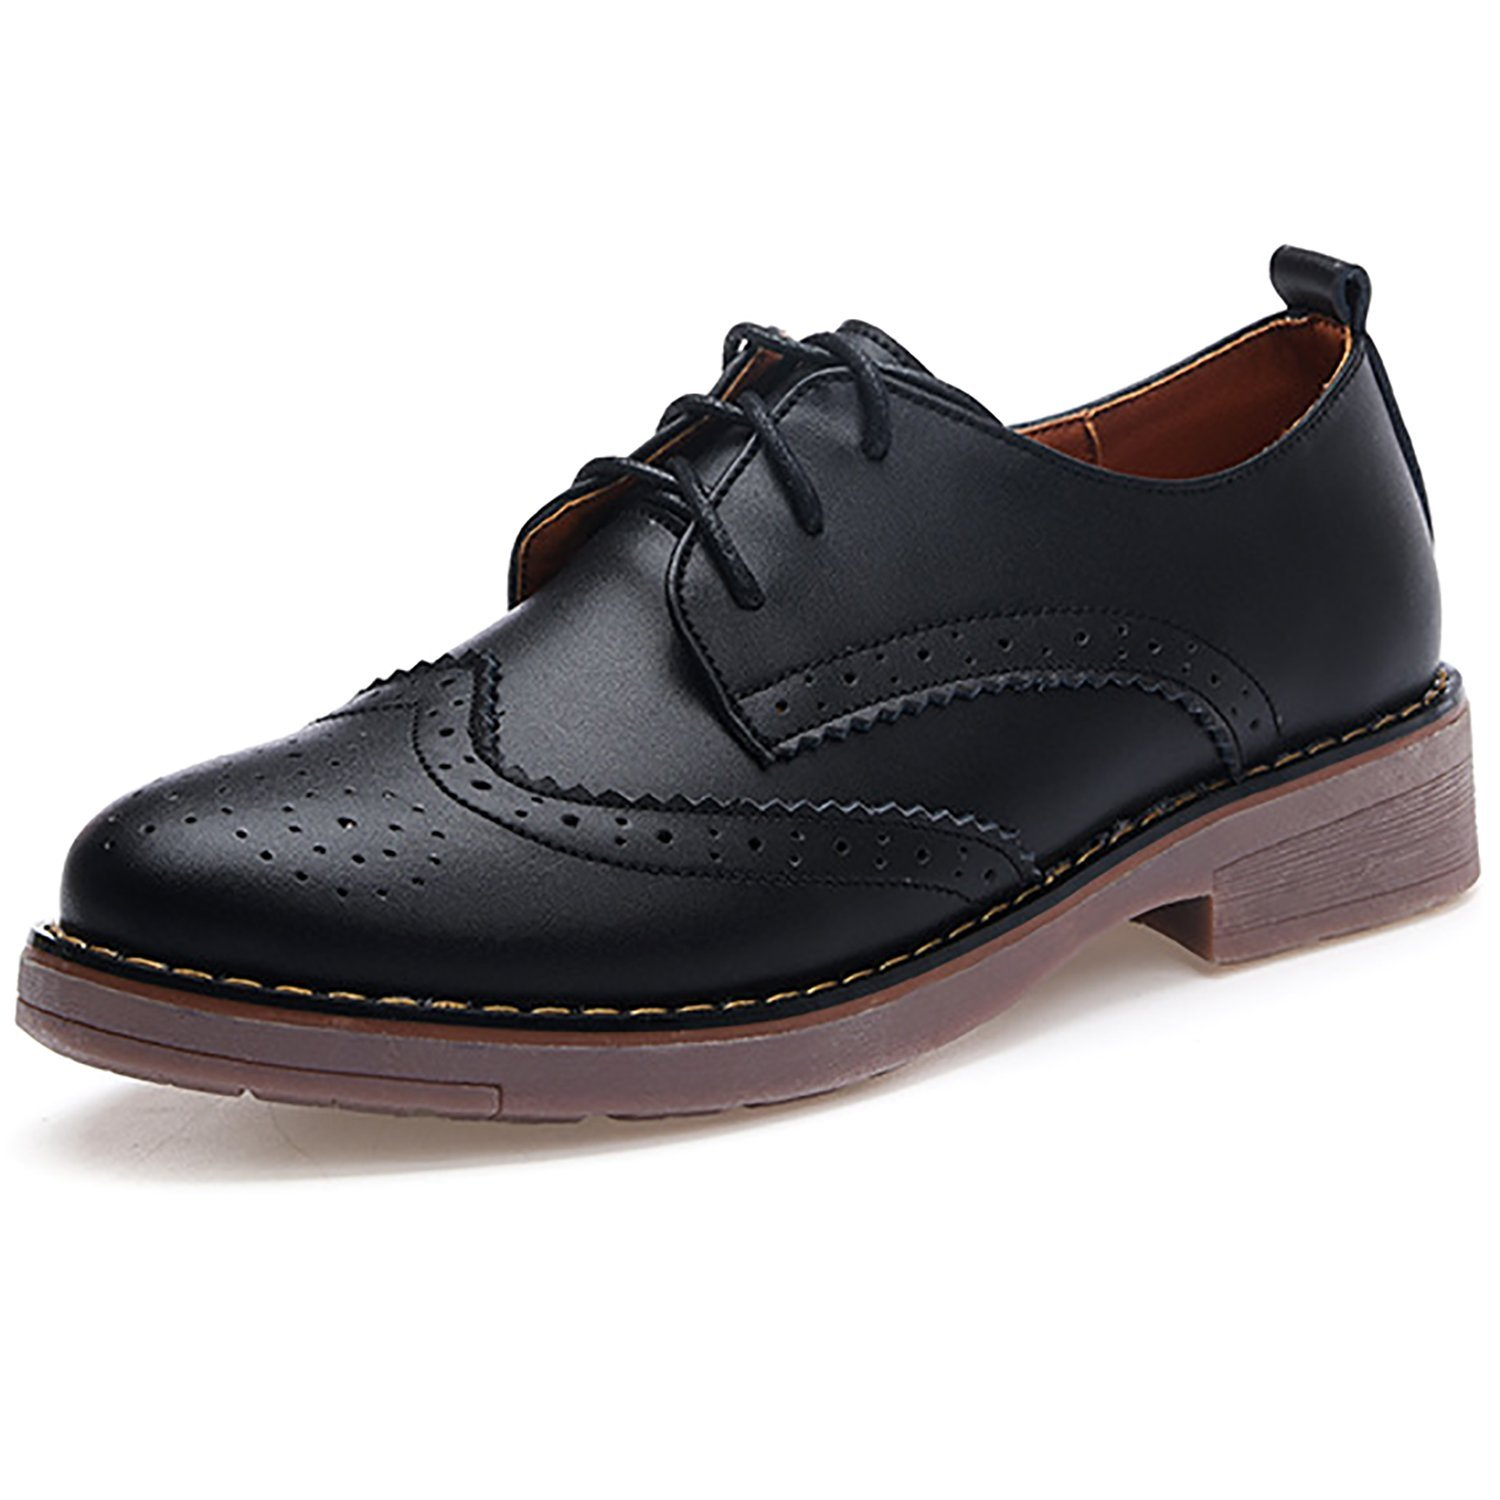 cf3b59fc17 Get Quotations · Odema Womens PU Leather Oxfords Brogue Wingtip Lace Up  Dress Walking Shoes Low Heels Oxfords